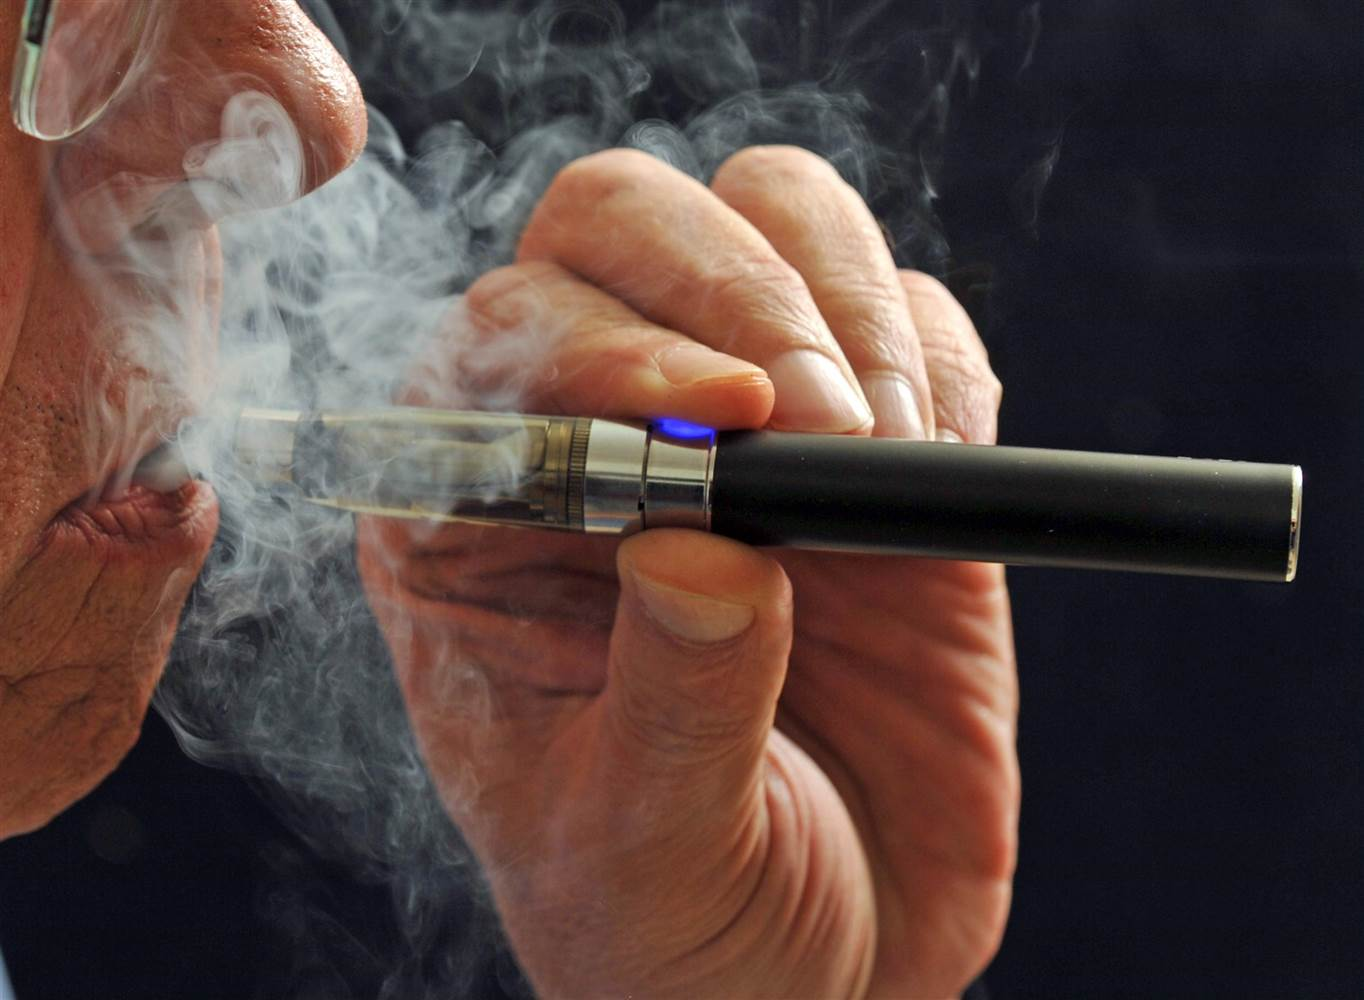 Vaping study suggests high-nicotine e-liquids offer better odds to quit smoking